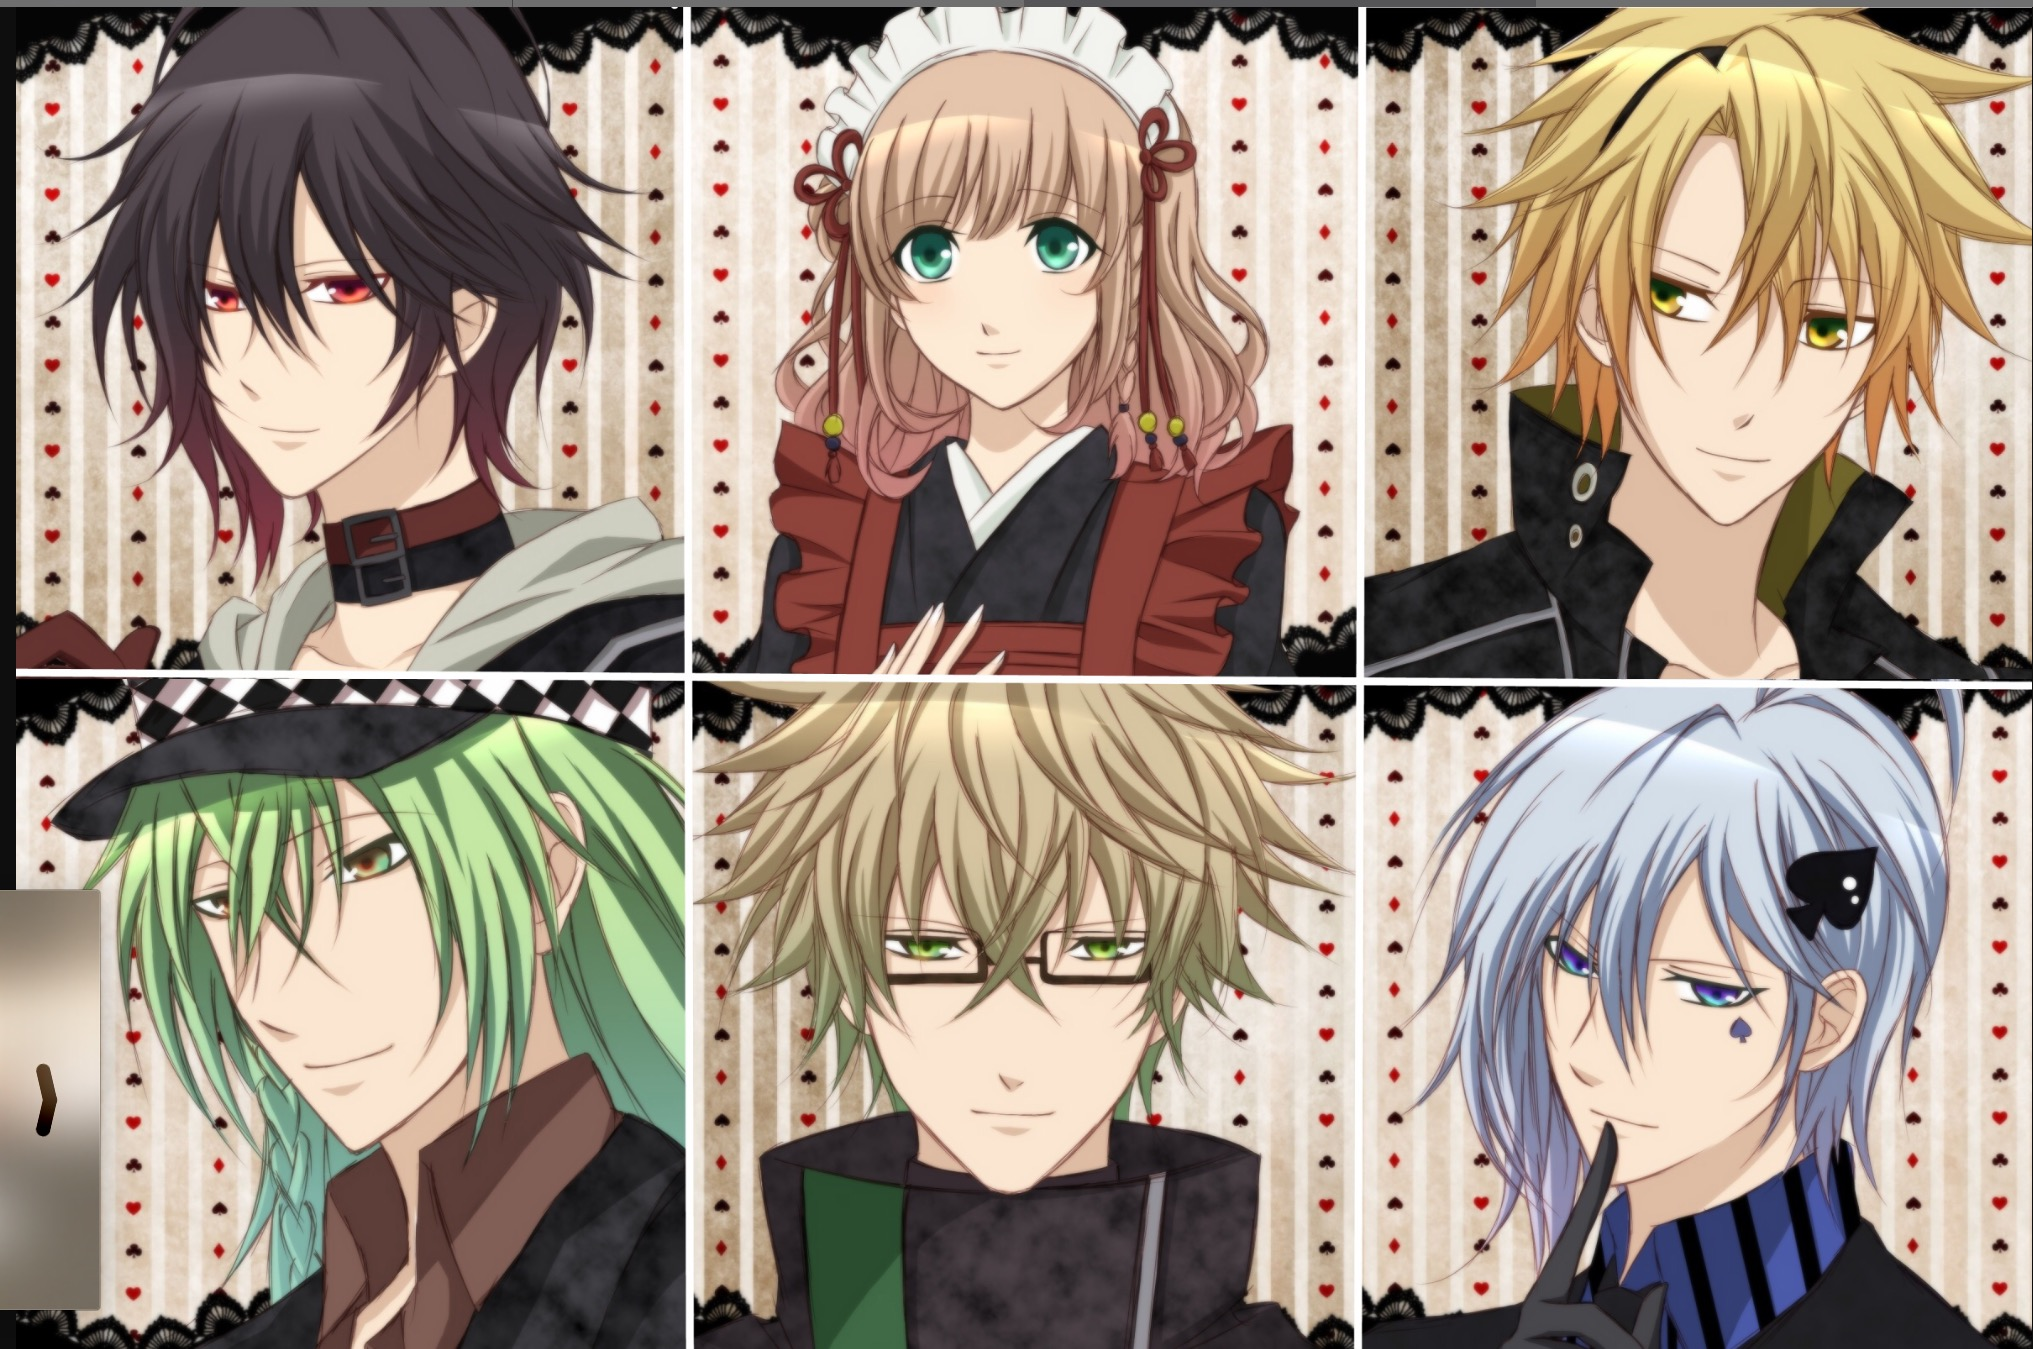 Your Favorite Amnesia Character?